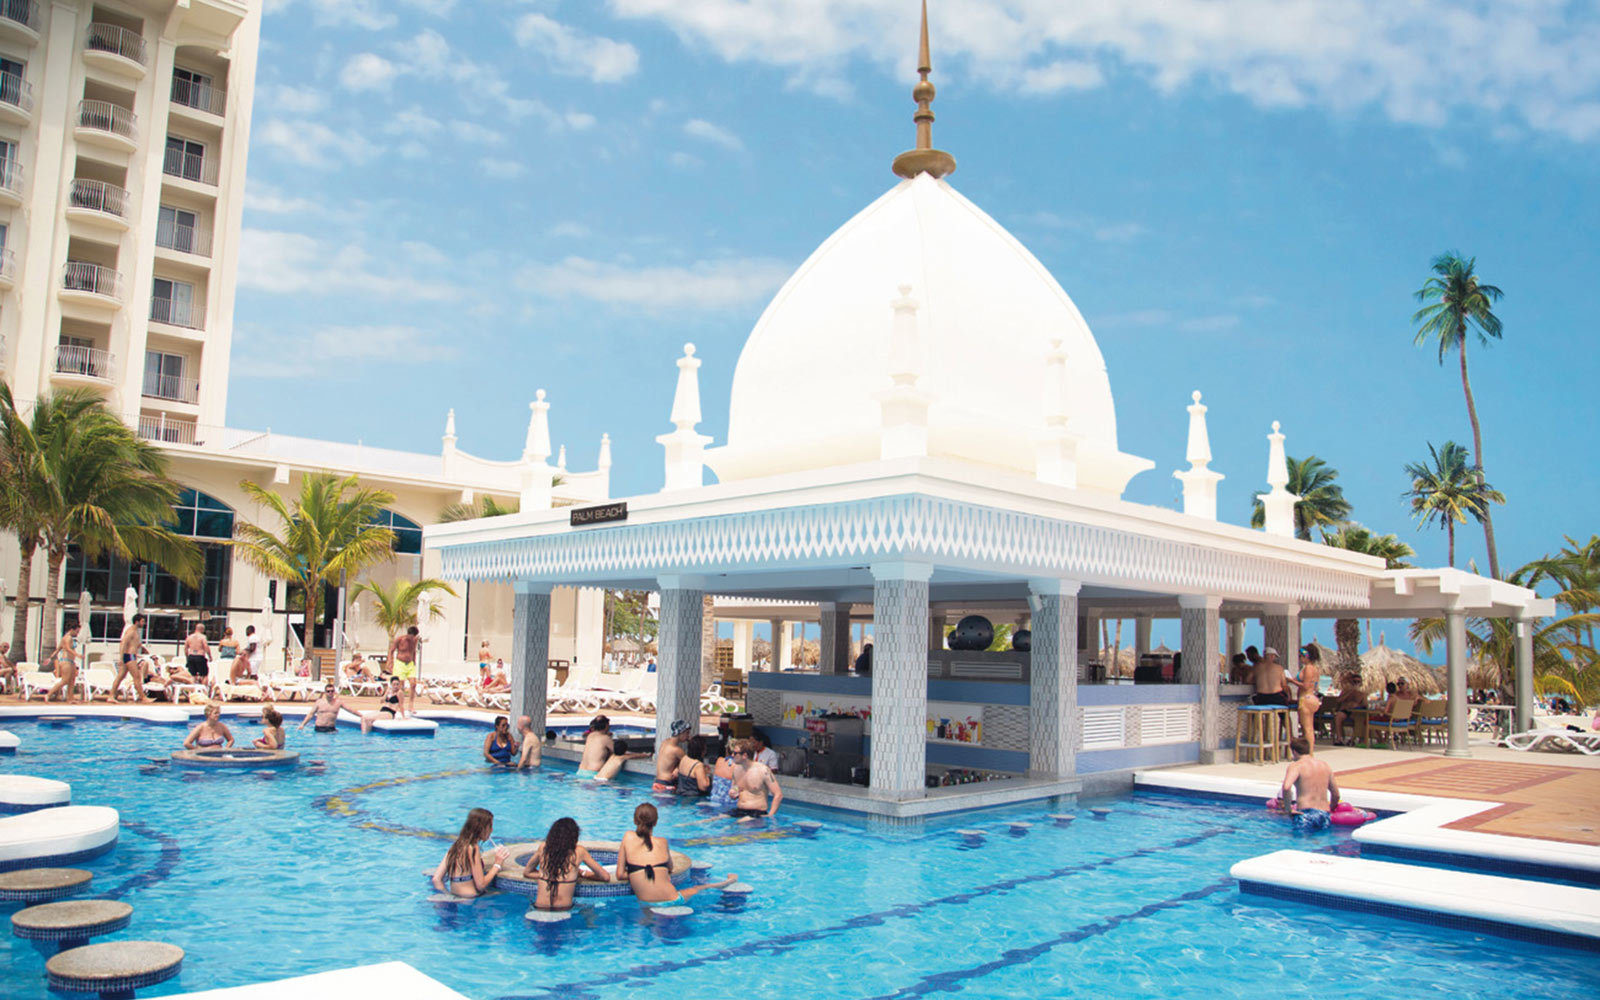 aldo shoes aruba vacations all-inclusive packages riu hotels